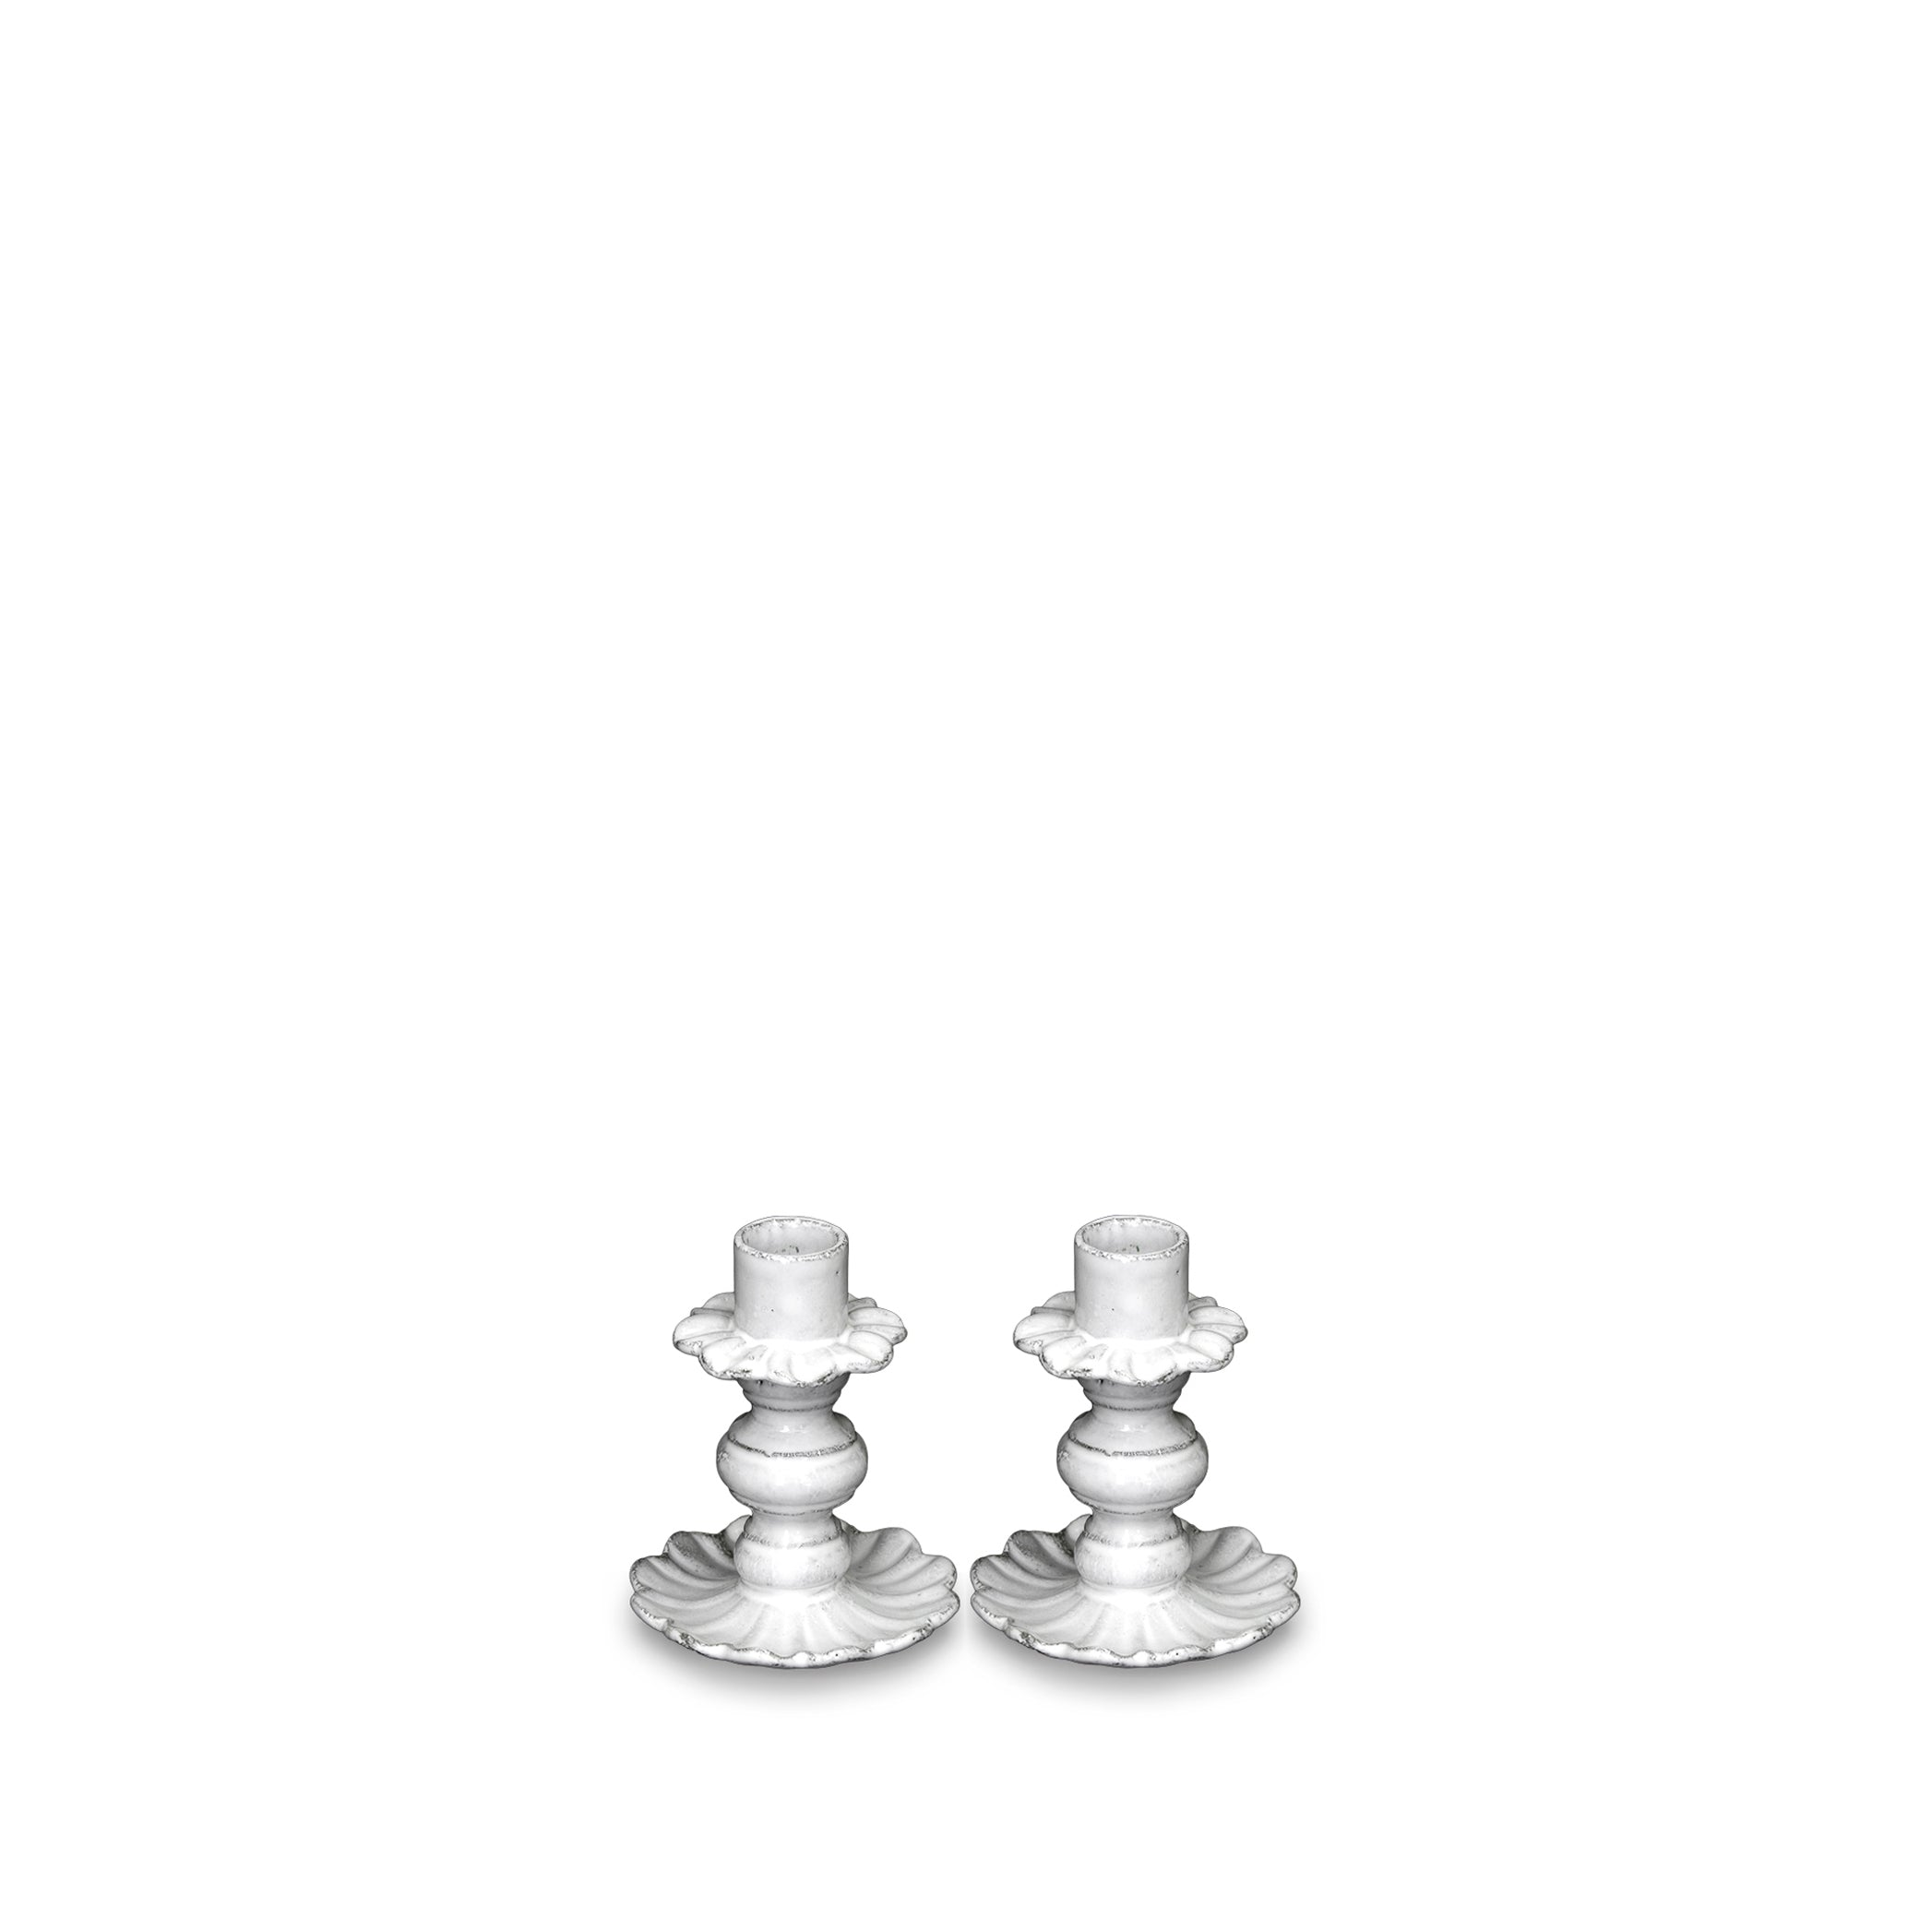 Pair of Fifi Candlesticks By Astier de Villatte